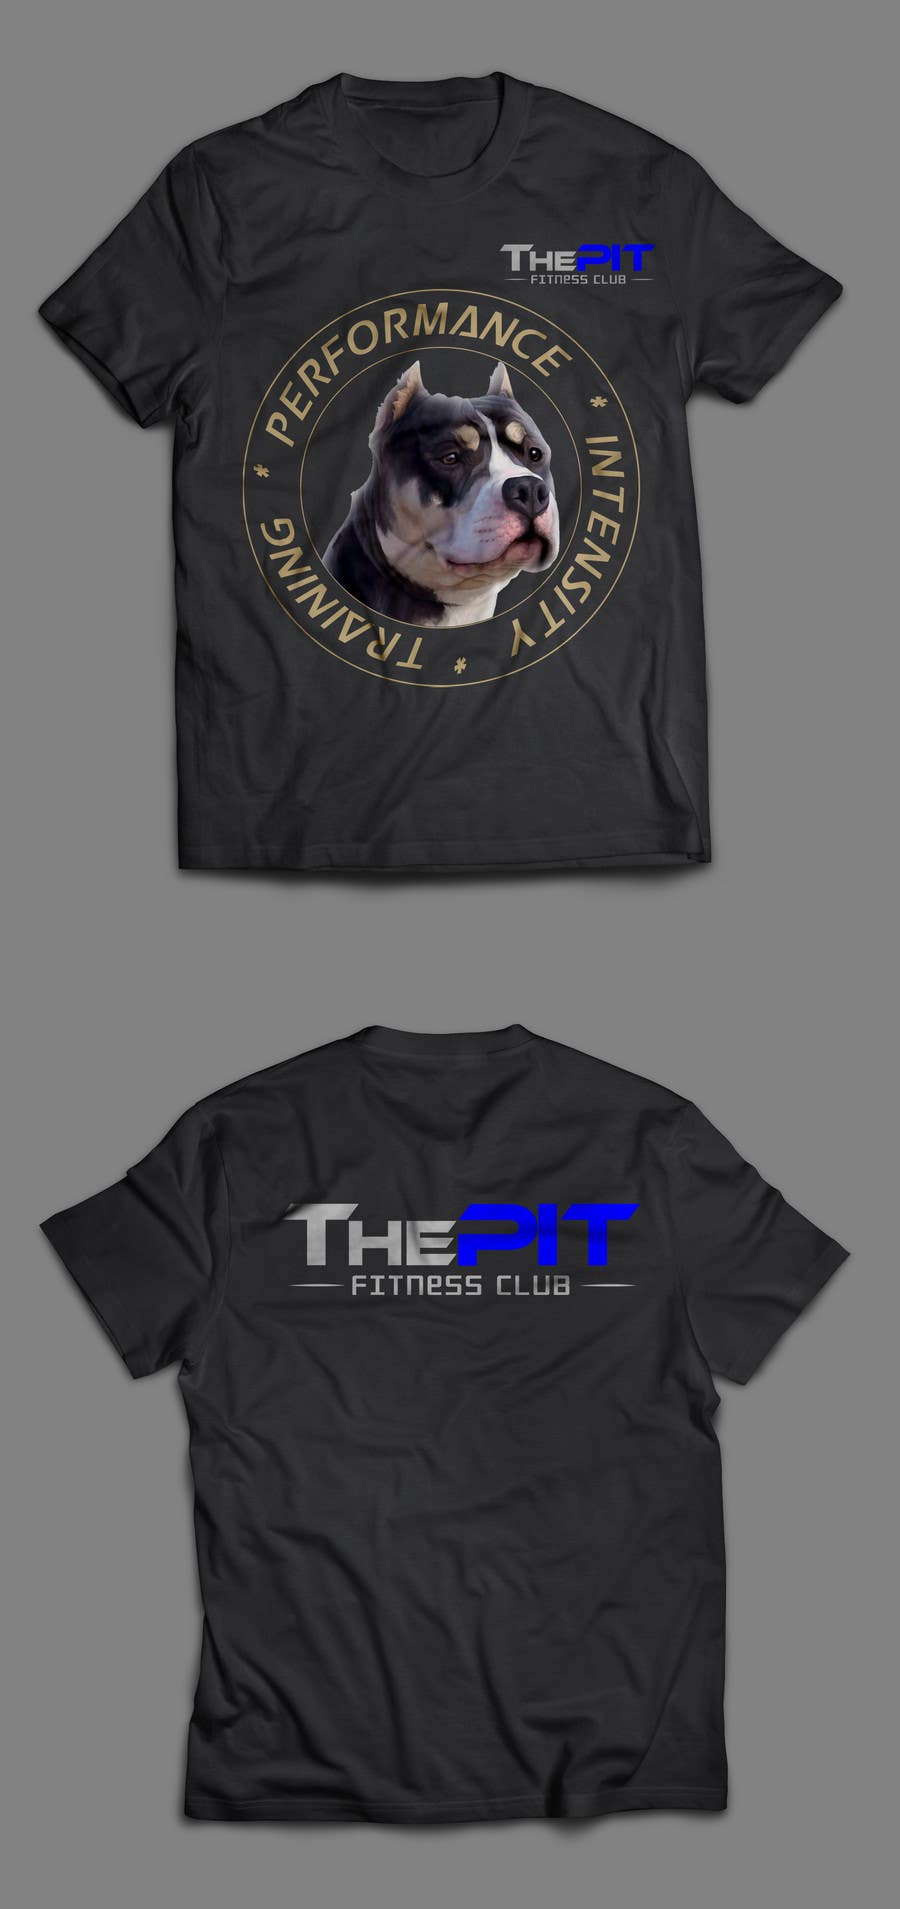 Proposition n°38 du concours Design tshirt for fitness gym